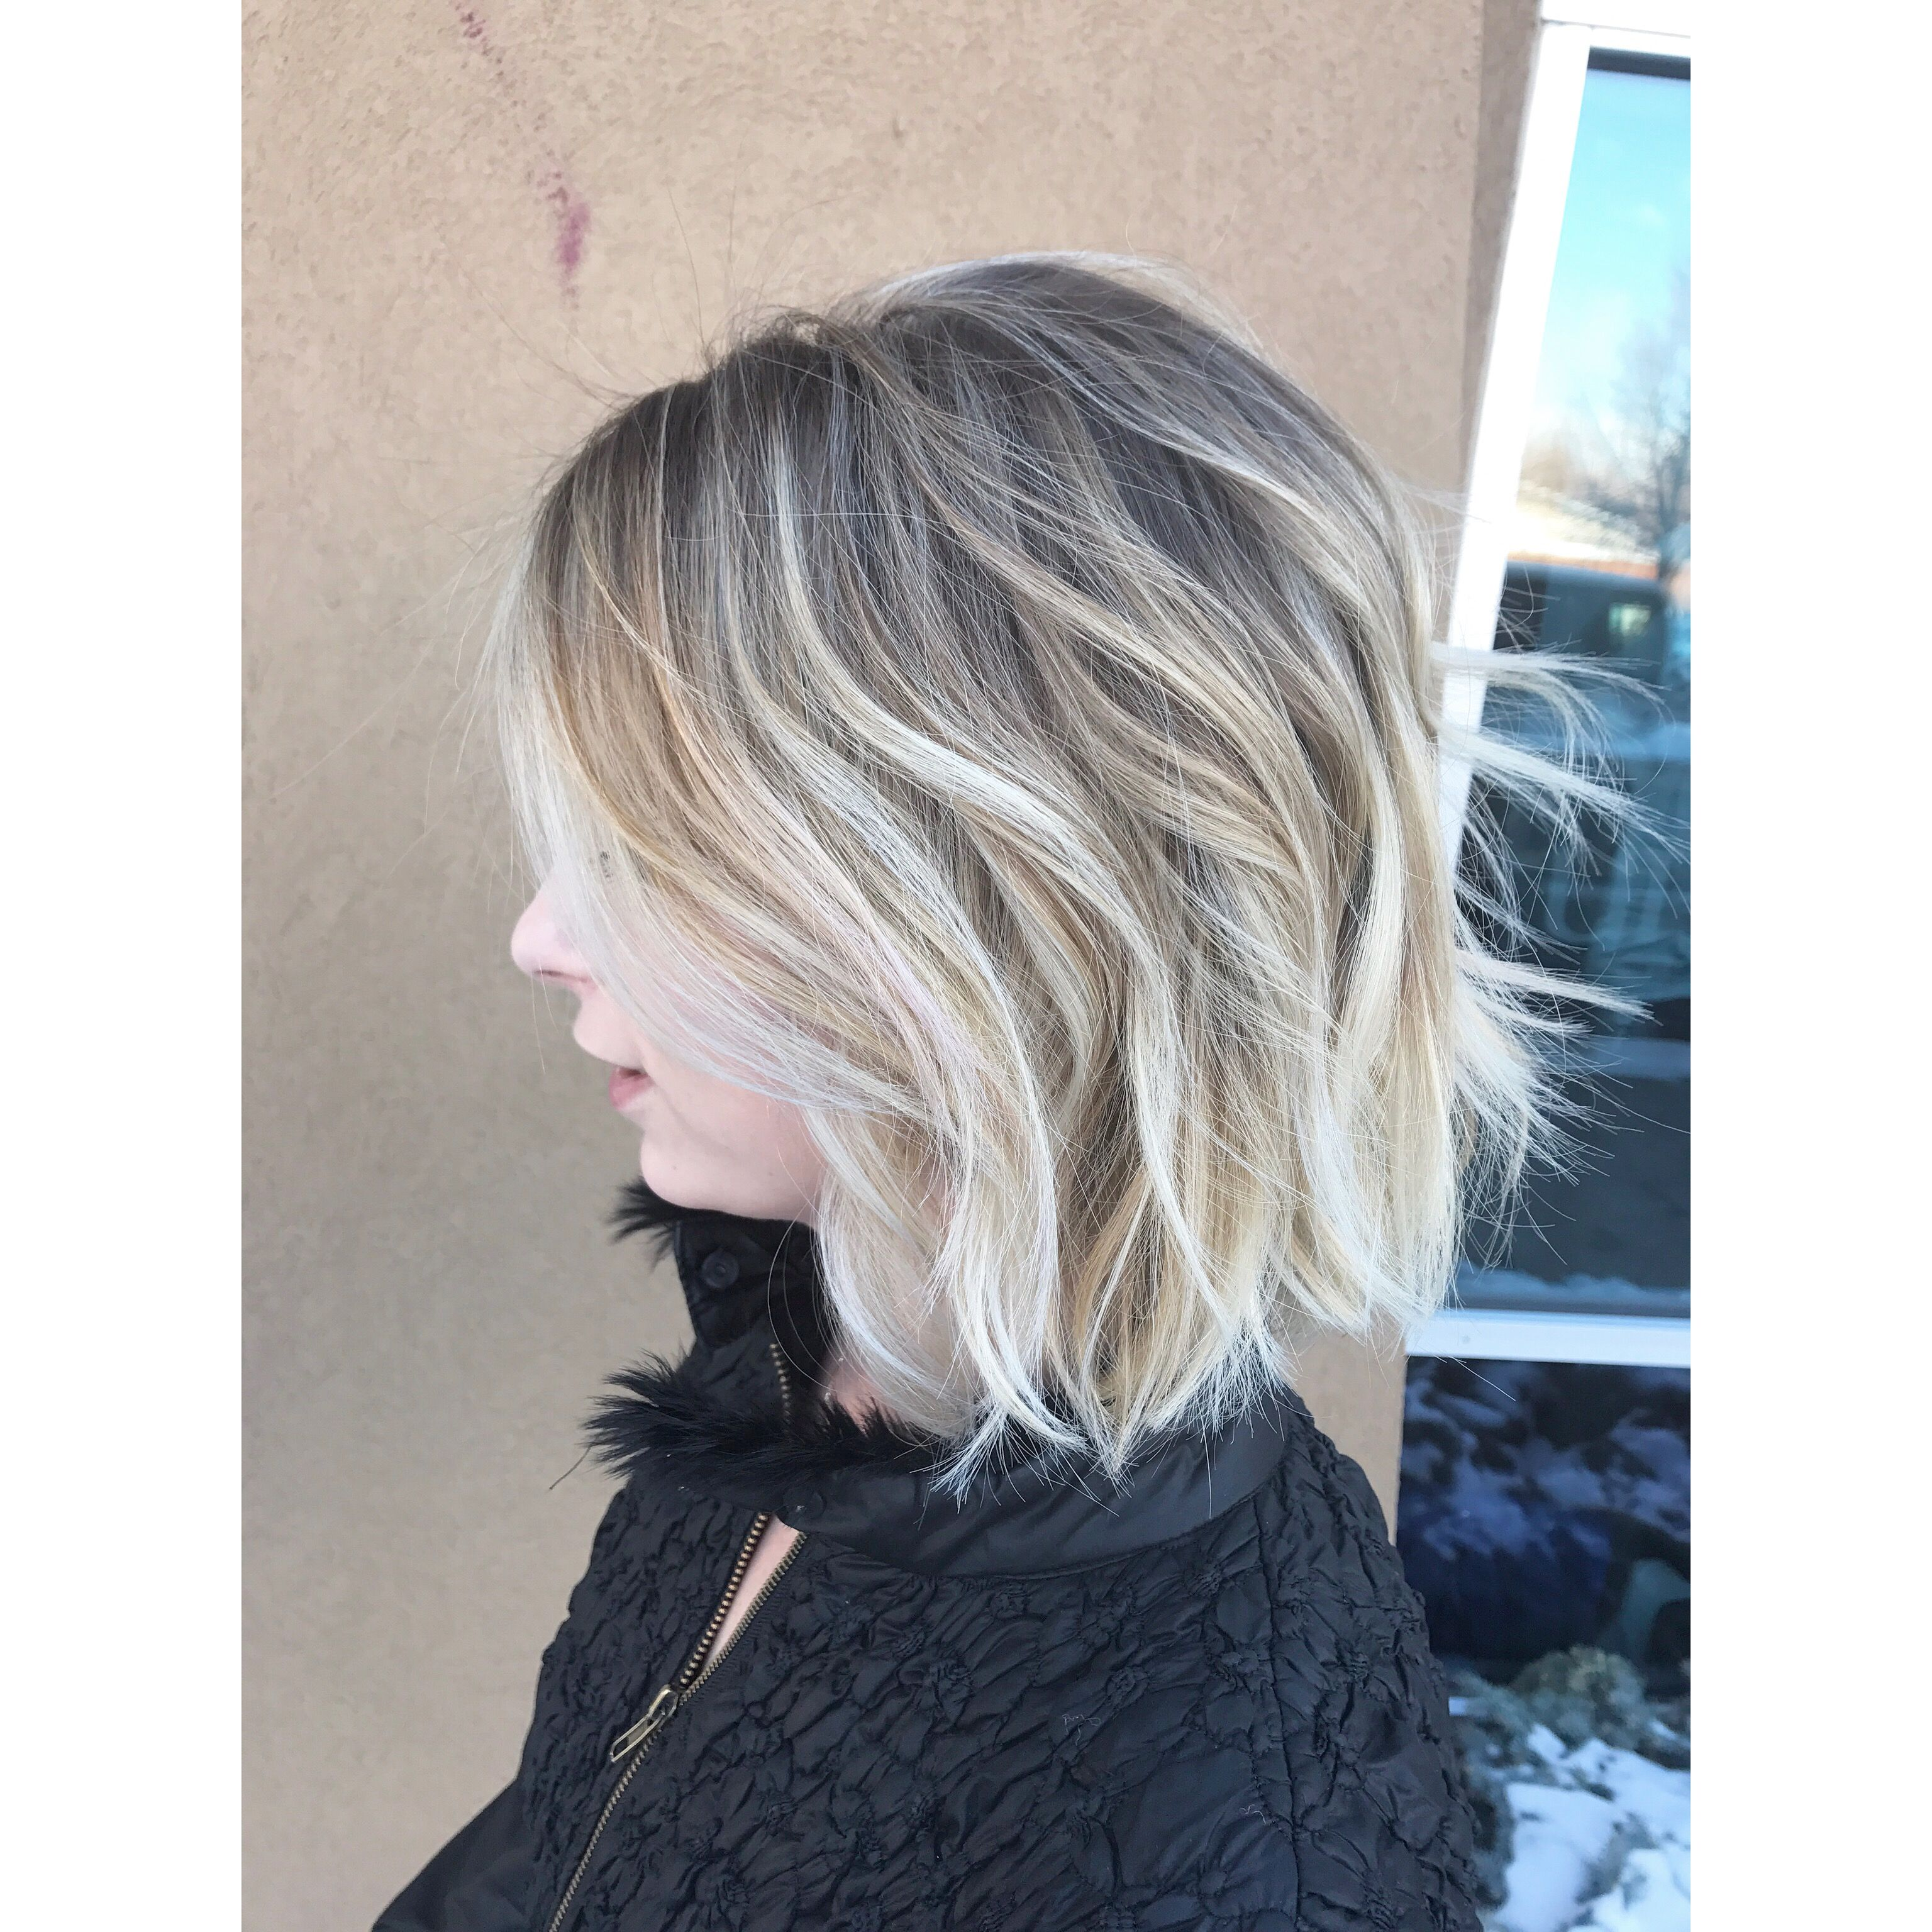 Natural Rooty Icy Blonde Bob Natural Blonde Balayage Icy Blonde Dimensional Blonde Bob Waves Short Hair Short Hair Balayage Natural Blondes Icy Blonde